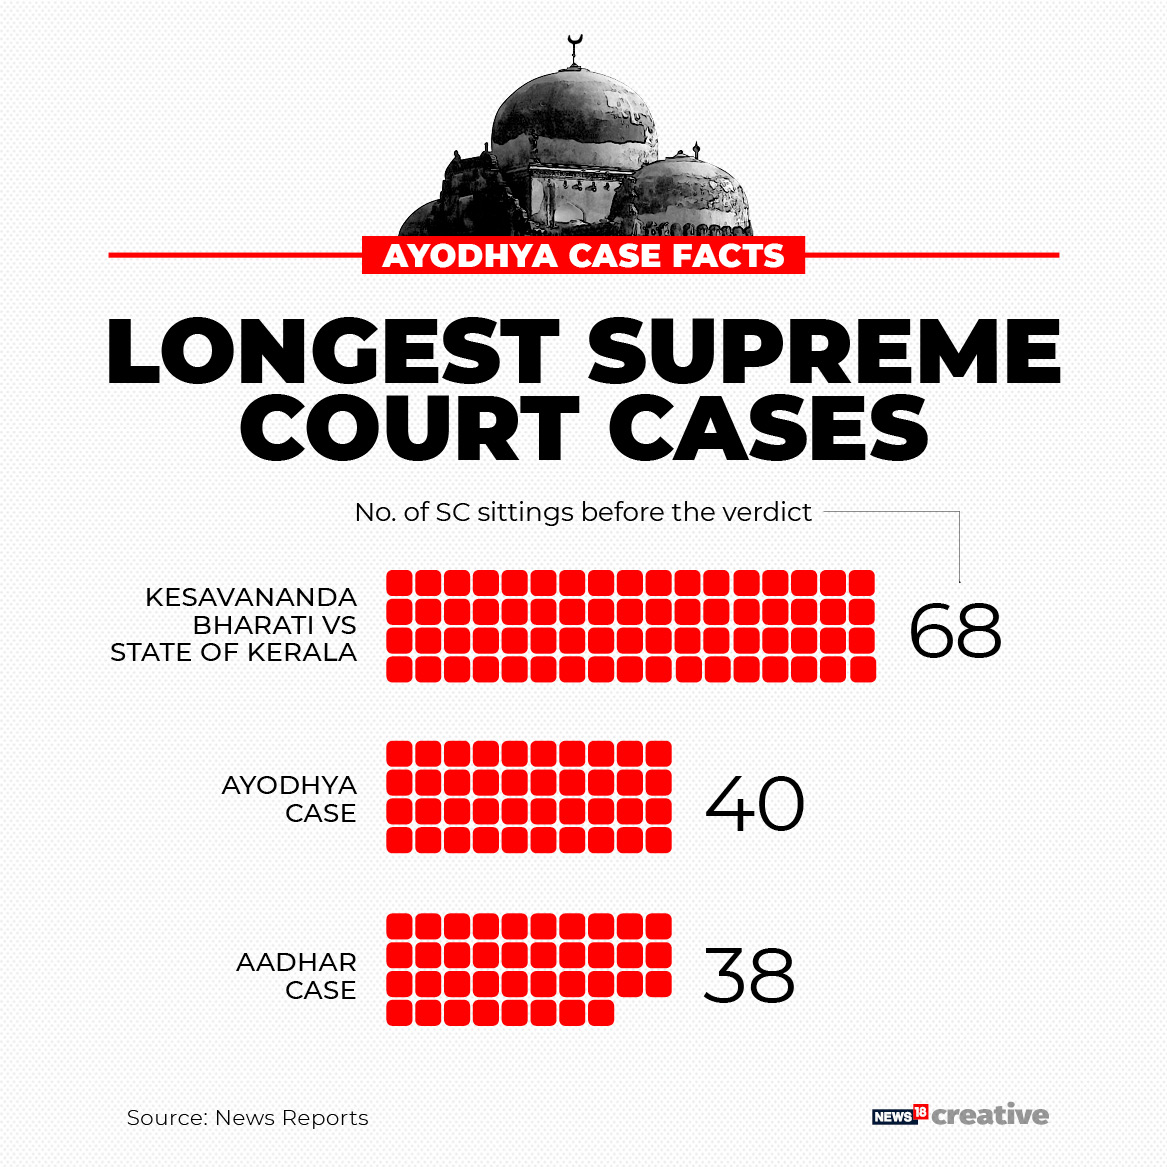 40-day hearing in Ayodhya case was 2nd longest in SC's history## 40-day hearing in Ayodhya case was 2nd longest in SC's history       The hearing in the politically and religiously sensitive decades-old temple-mosque land dispute in Ayodhya was the second longest proceedings in the history of the Supreme Court which had lasted for 40 days. The high voltage hearing in the Ram Janambhoomi-Babri Masjid dispute had commenced on August 6 and concluded on October 16, and the apex court pronounced the verdict on Saturday.    The longest was the landmark Keshvanand Bharti case in 1973 during which the proceedings for propounding the doctrine of basic structure of the Constitution continued for 68 days.    The third longest hearing in the top court was on the validity of Aadhaar scheme and had lasted for 38 days in the top court. The bench also comprised Justices S A Bobde, D Y Chandrachud, Ashok Bhushan and S A Nazeer.